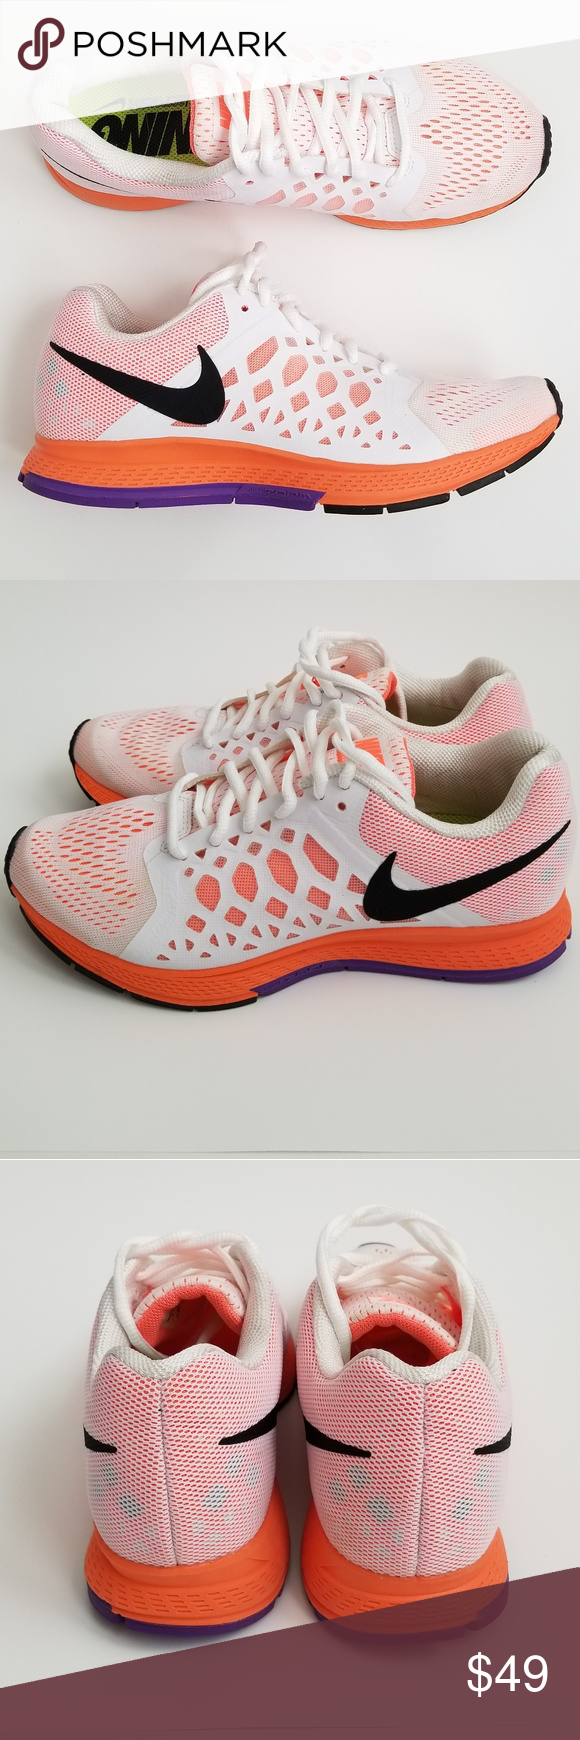 size 40 fe2c5 f91c3 Nike Air Zoom Pegasus 31 Running Shoes Womens Nike Air Zoom Pegasus 31  running shoes, size 6.5. White with orange and purple, white laces. Mesh  upper.